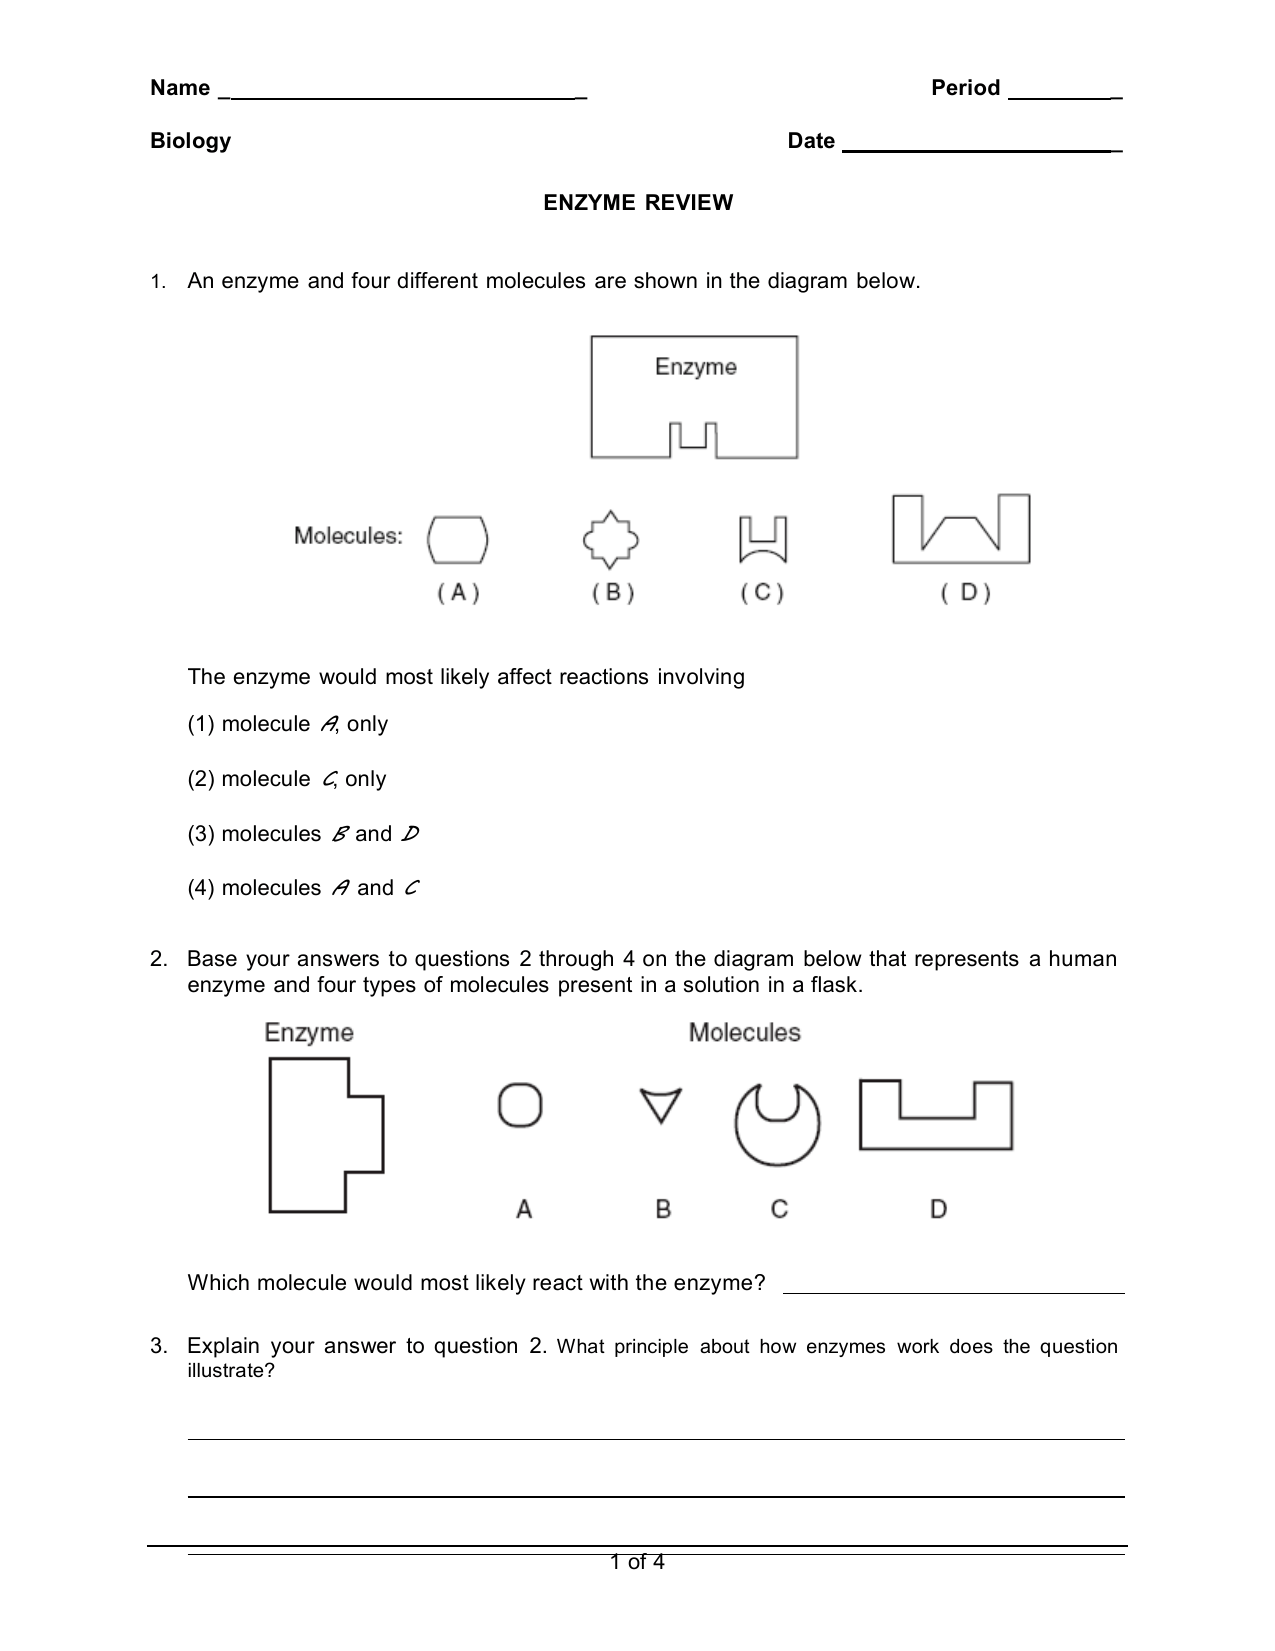 Enzyme Review Worksheet Answers